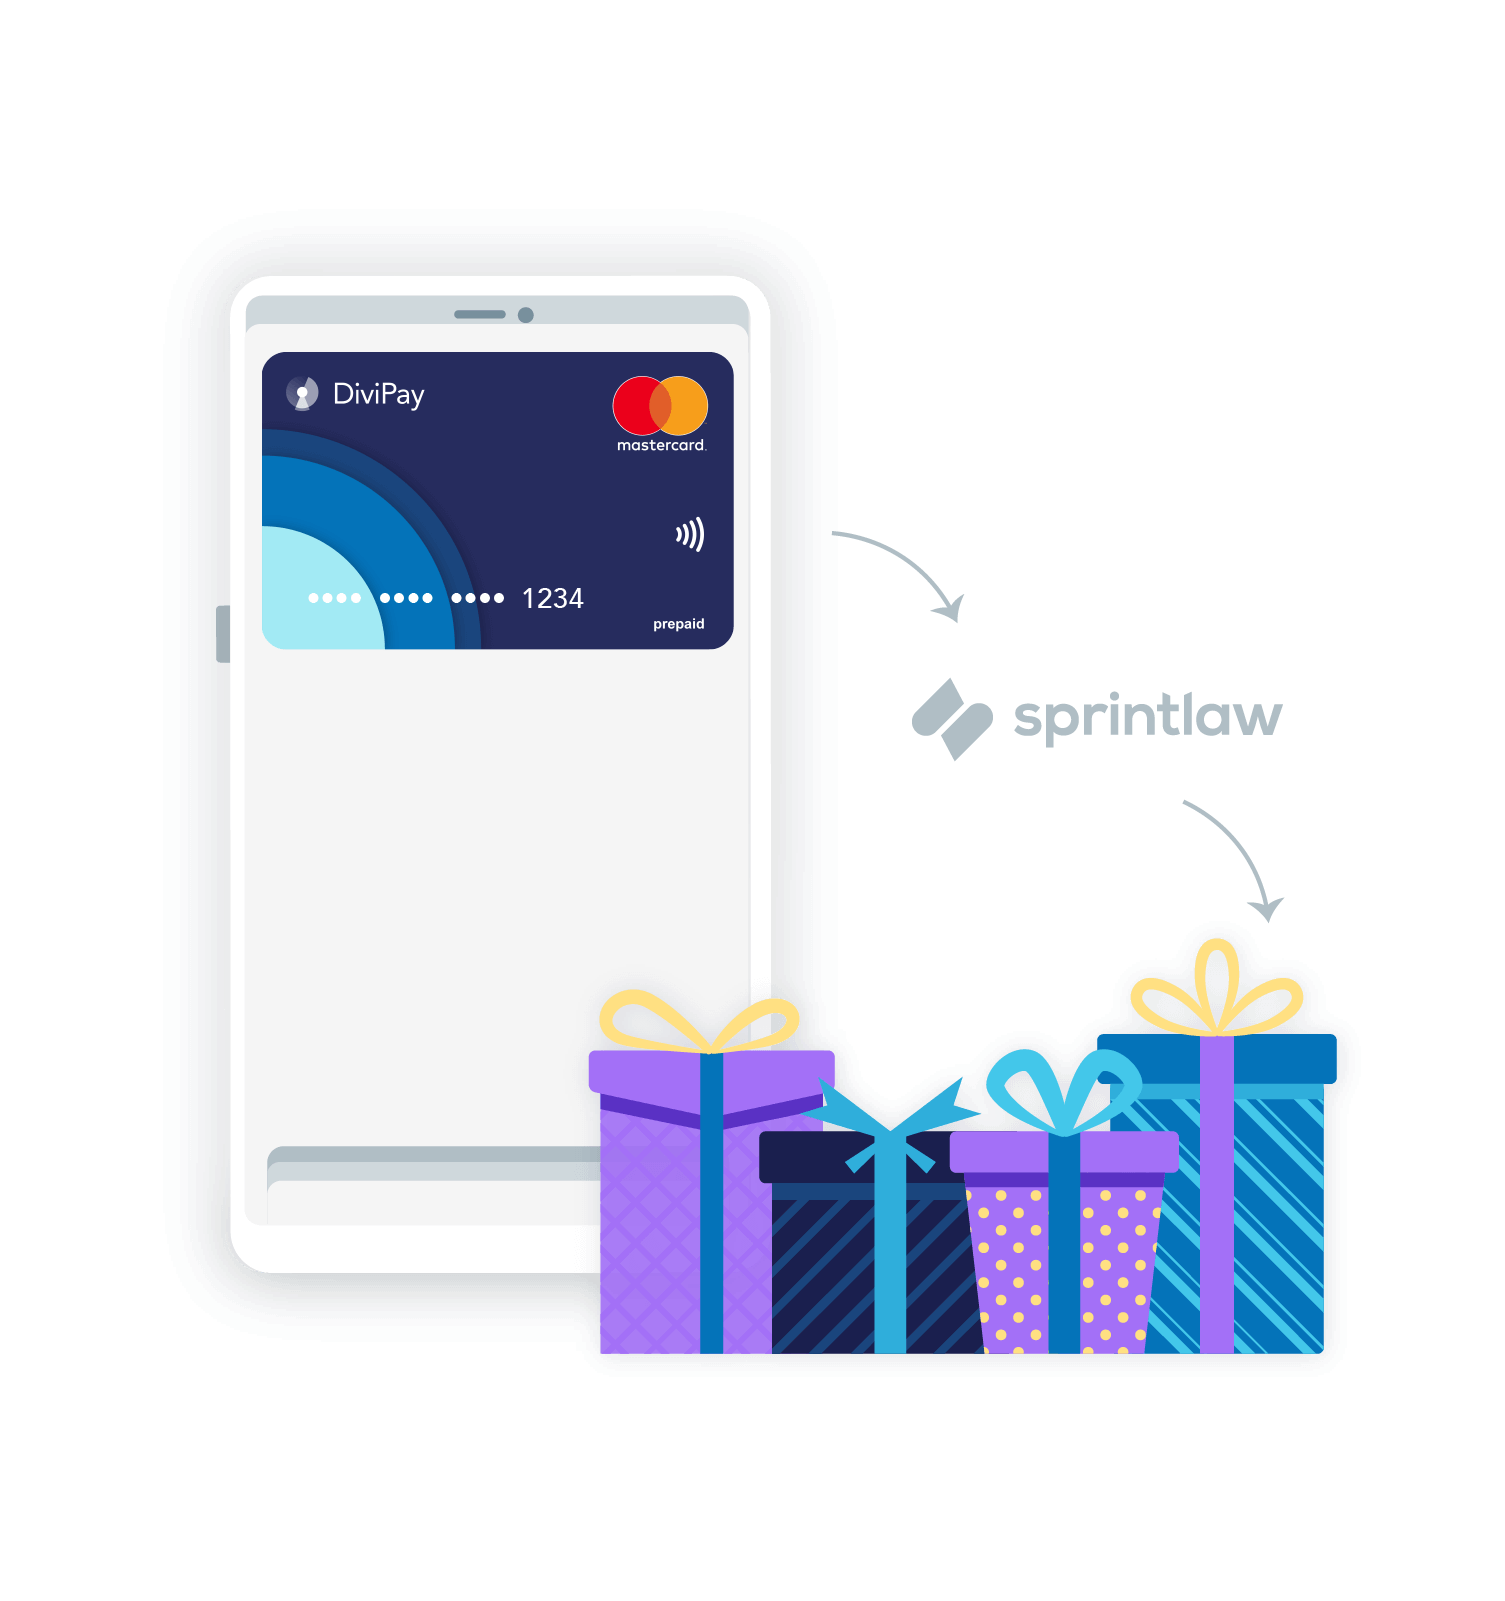 Sprintlaw discount with DiviPay